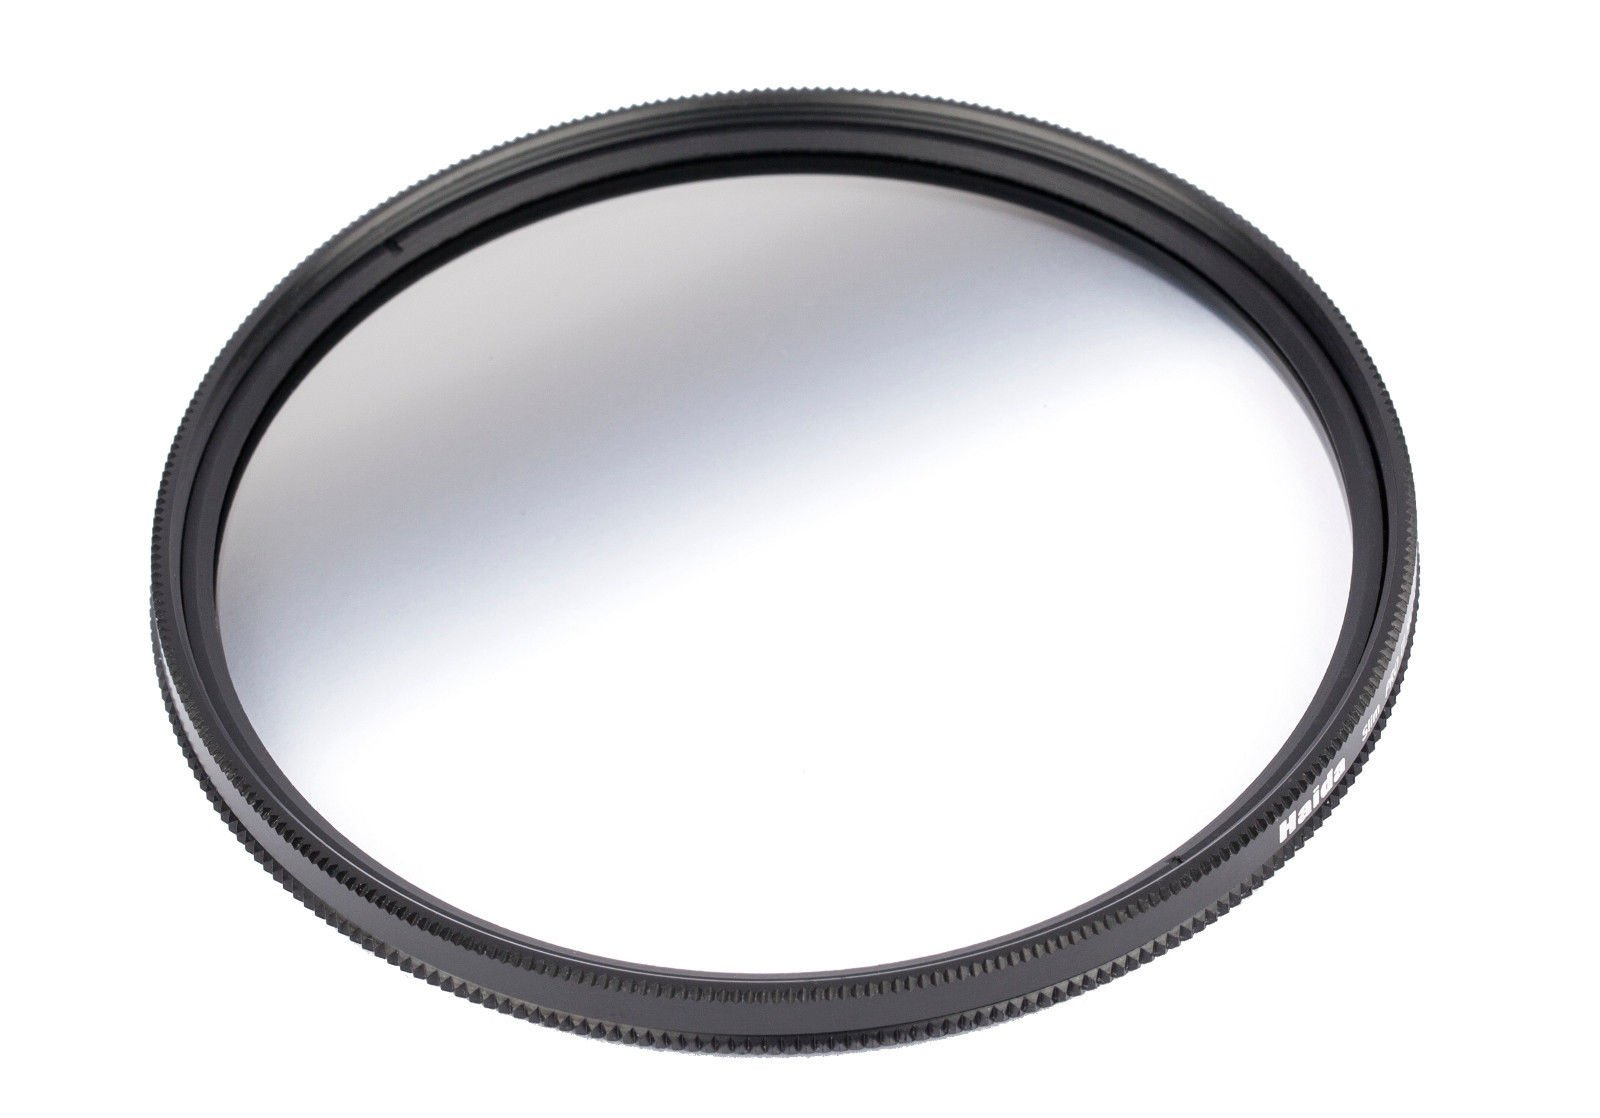 95mm Haida Slim PROII Filter Multi-Coated Grad Graduated Neutral Density ND ND8 0.9 ND0.9 8X by Haida